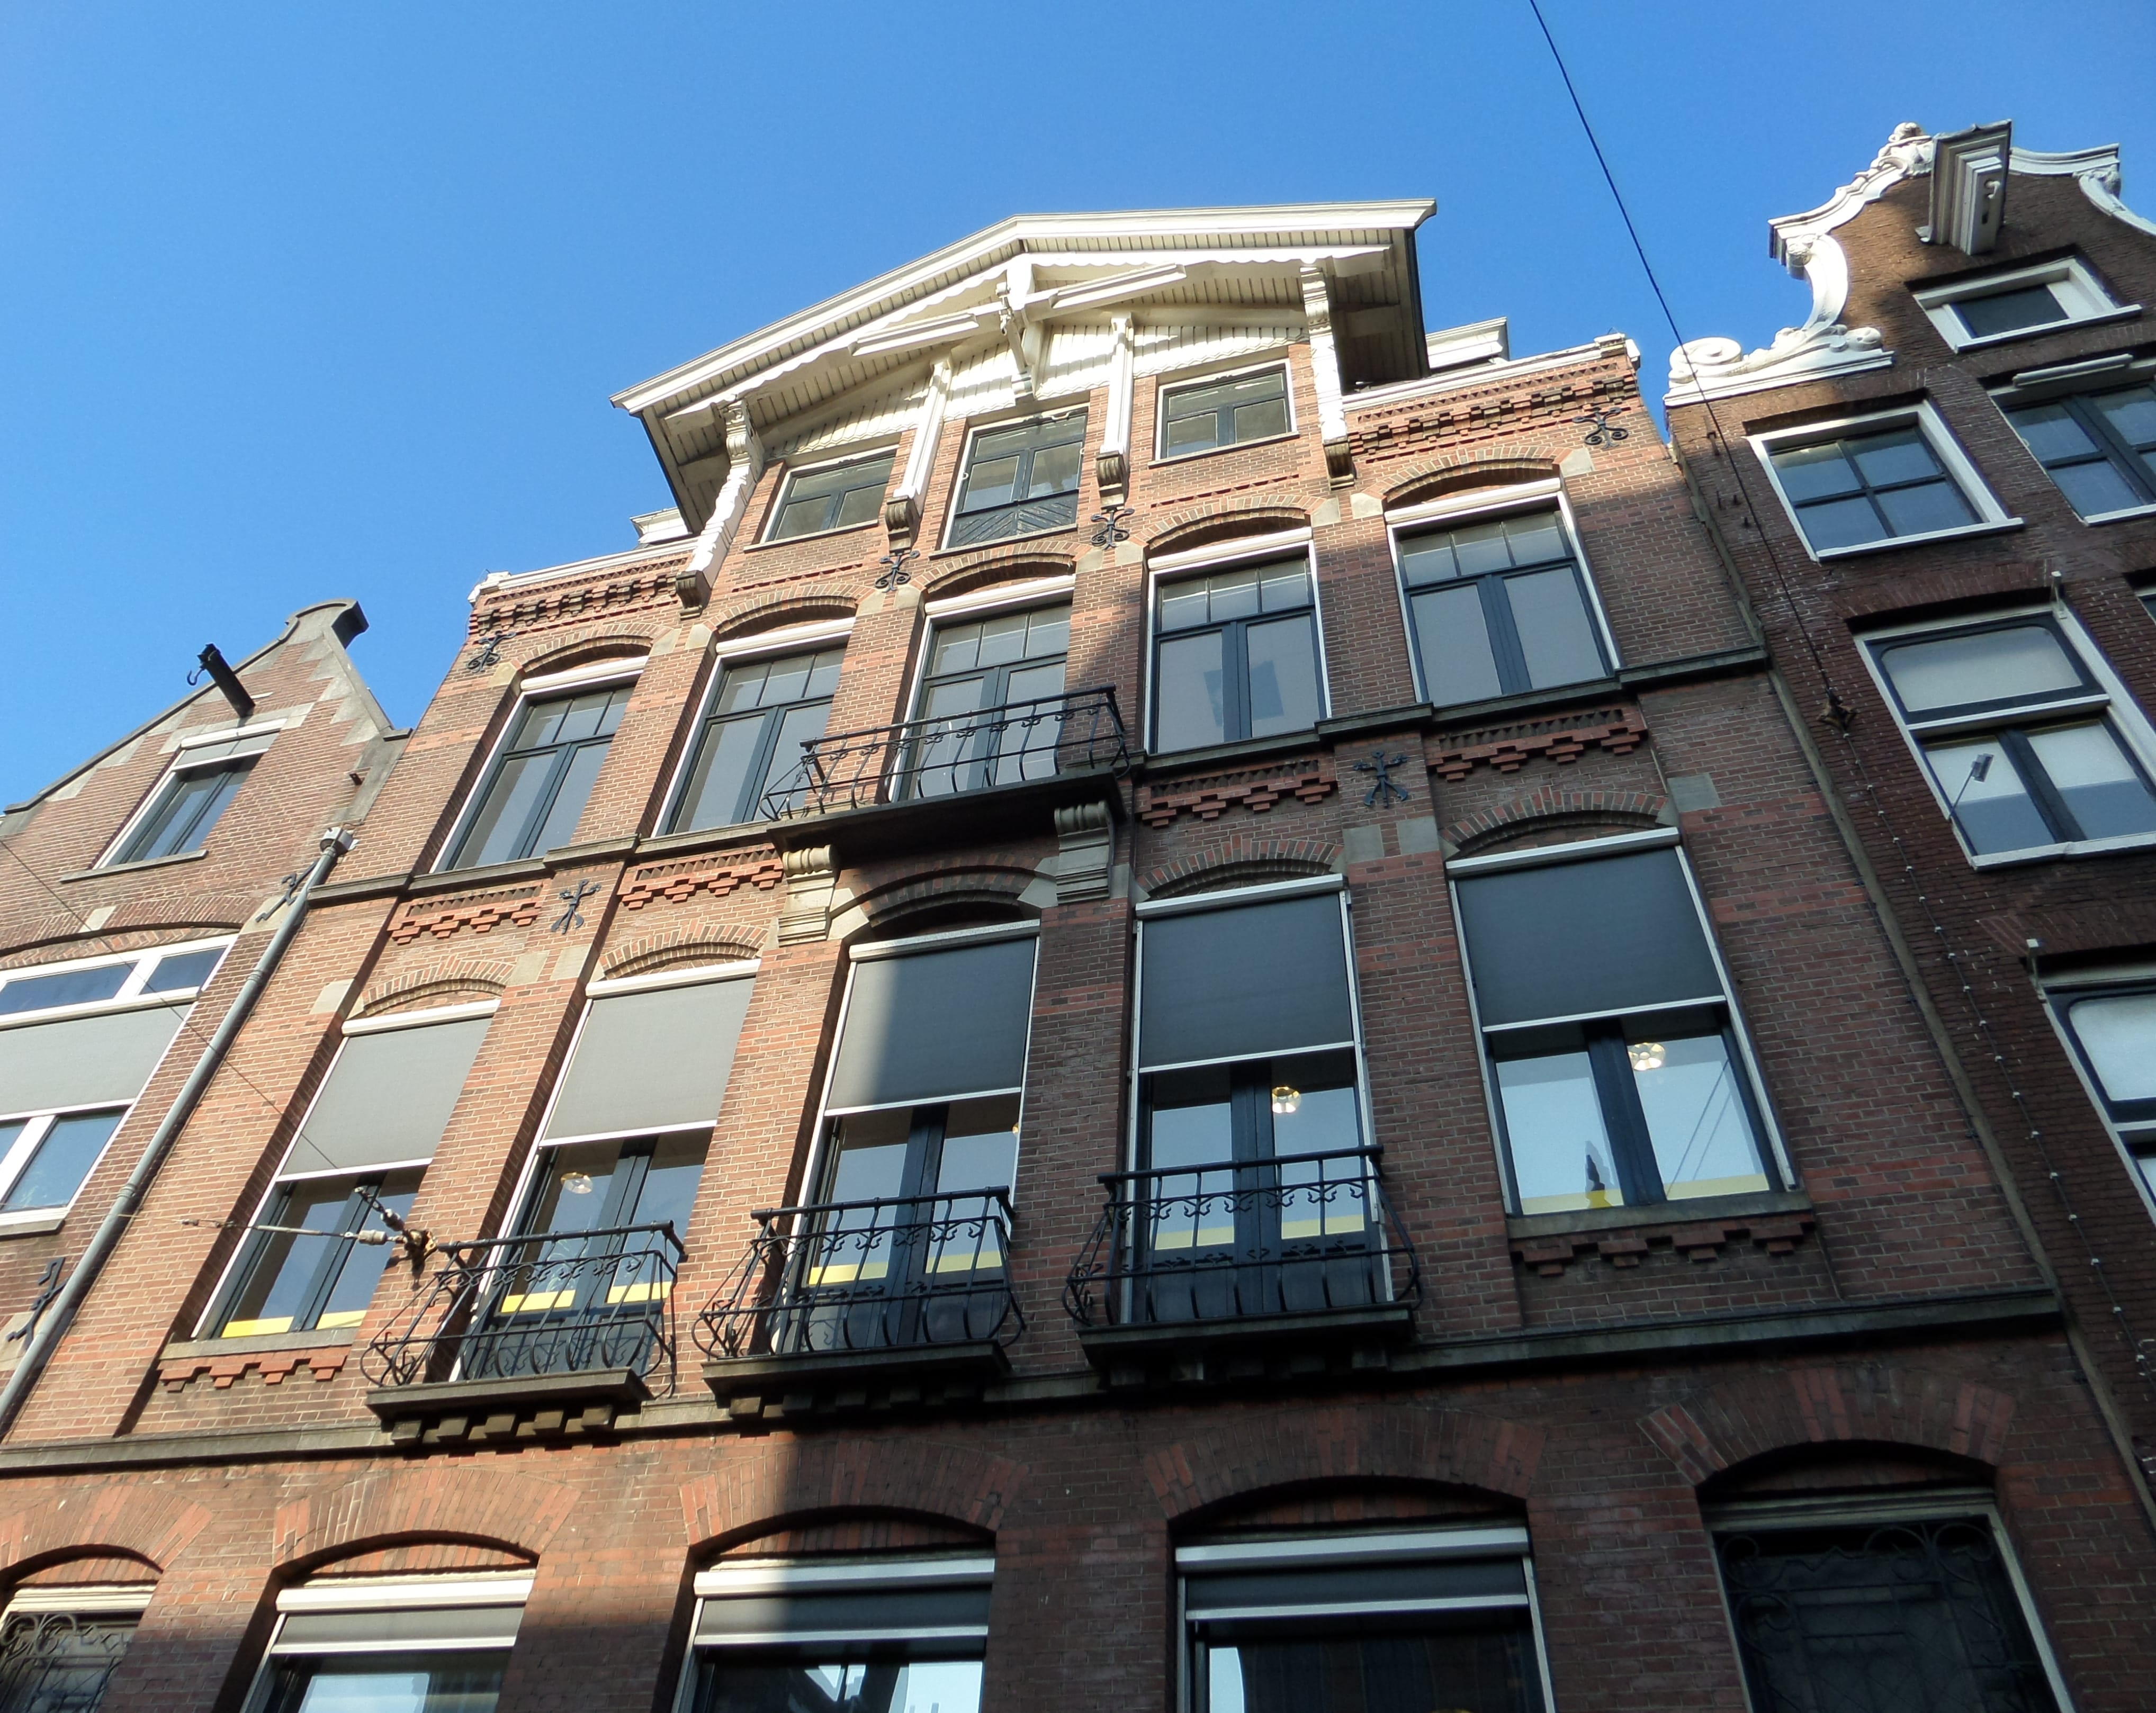 virtual offices for rent at the Raadhuisstraat in Amsterdam